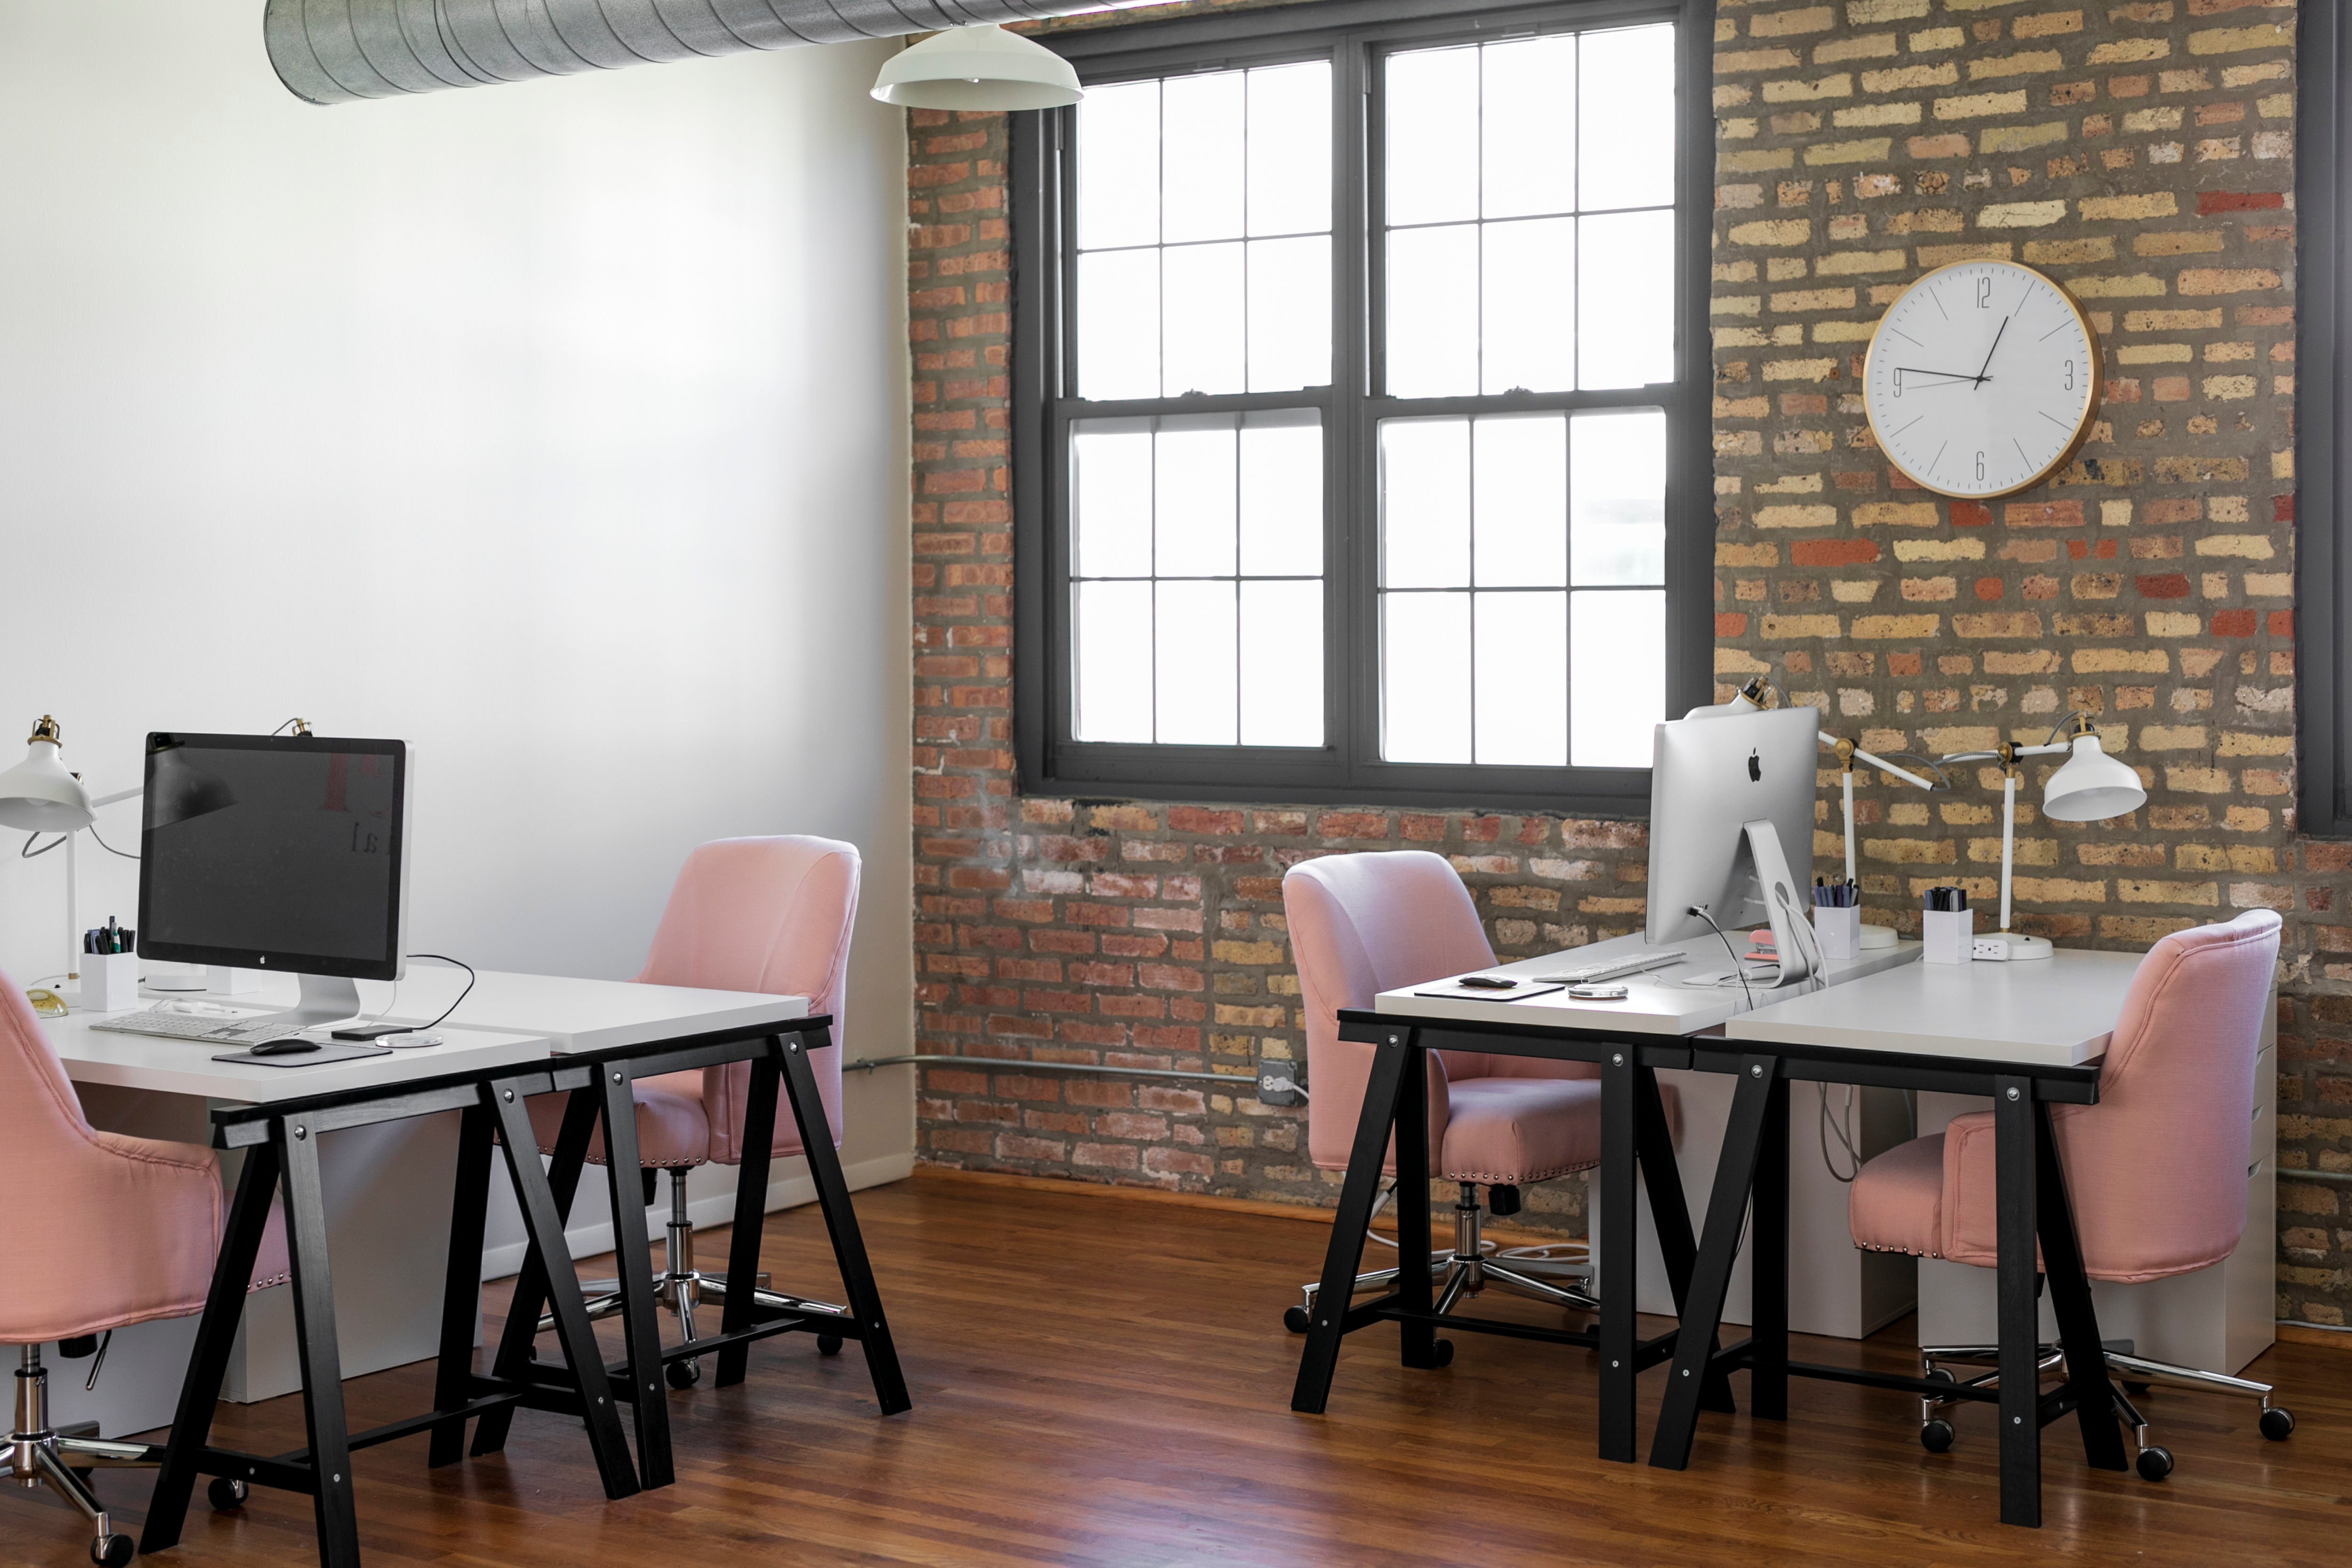 Many offices are still empty as Americans work remotely during the pandemic. How can we bring people together in these times to foster a sense of community?